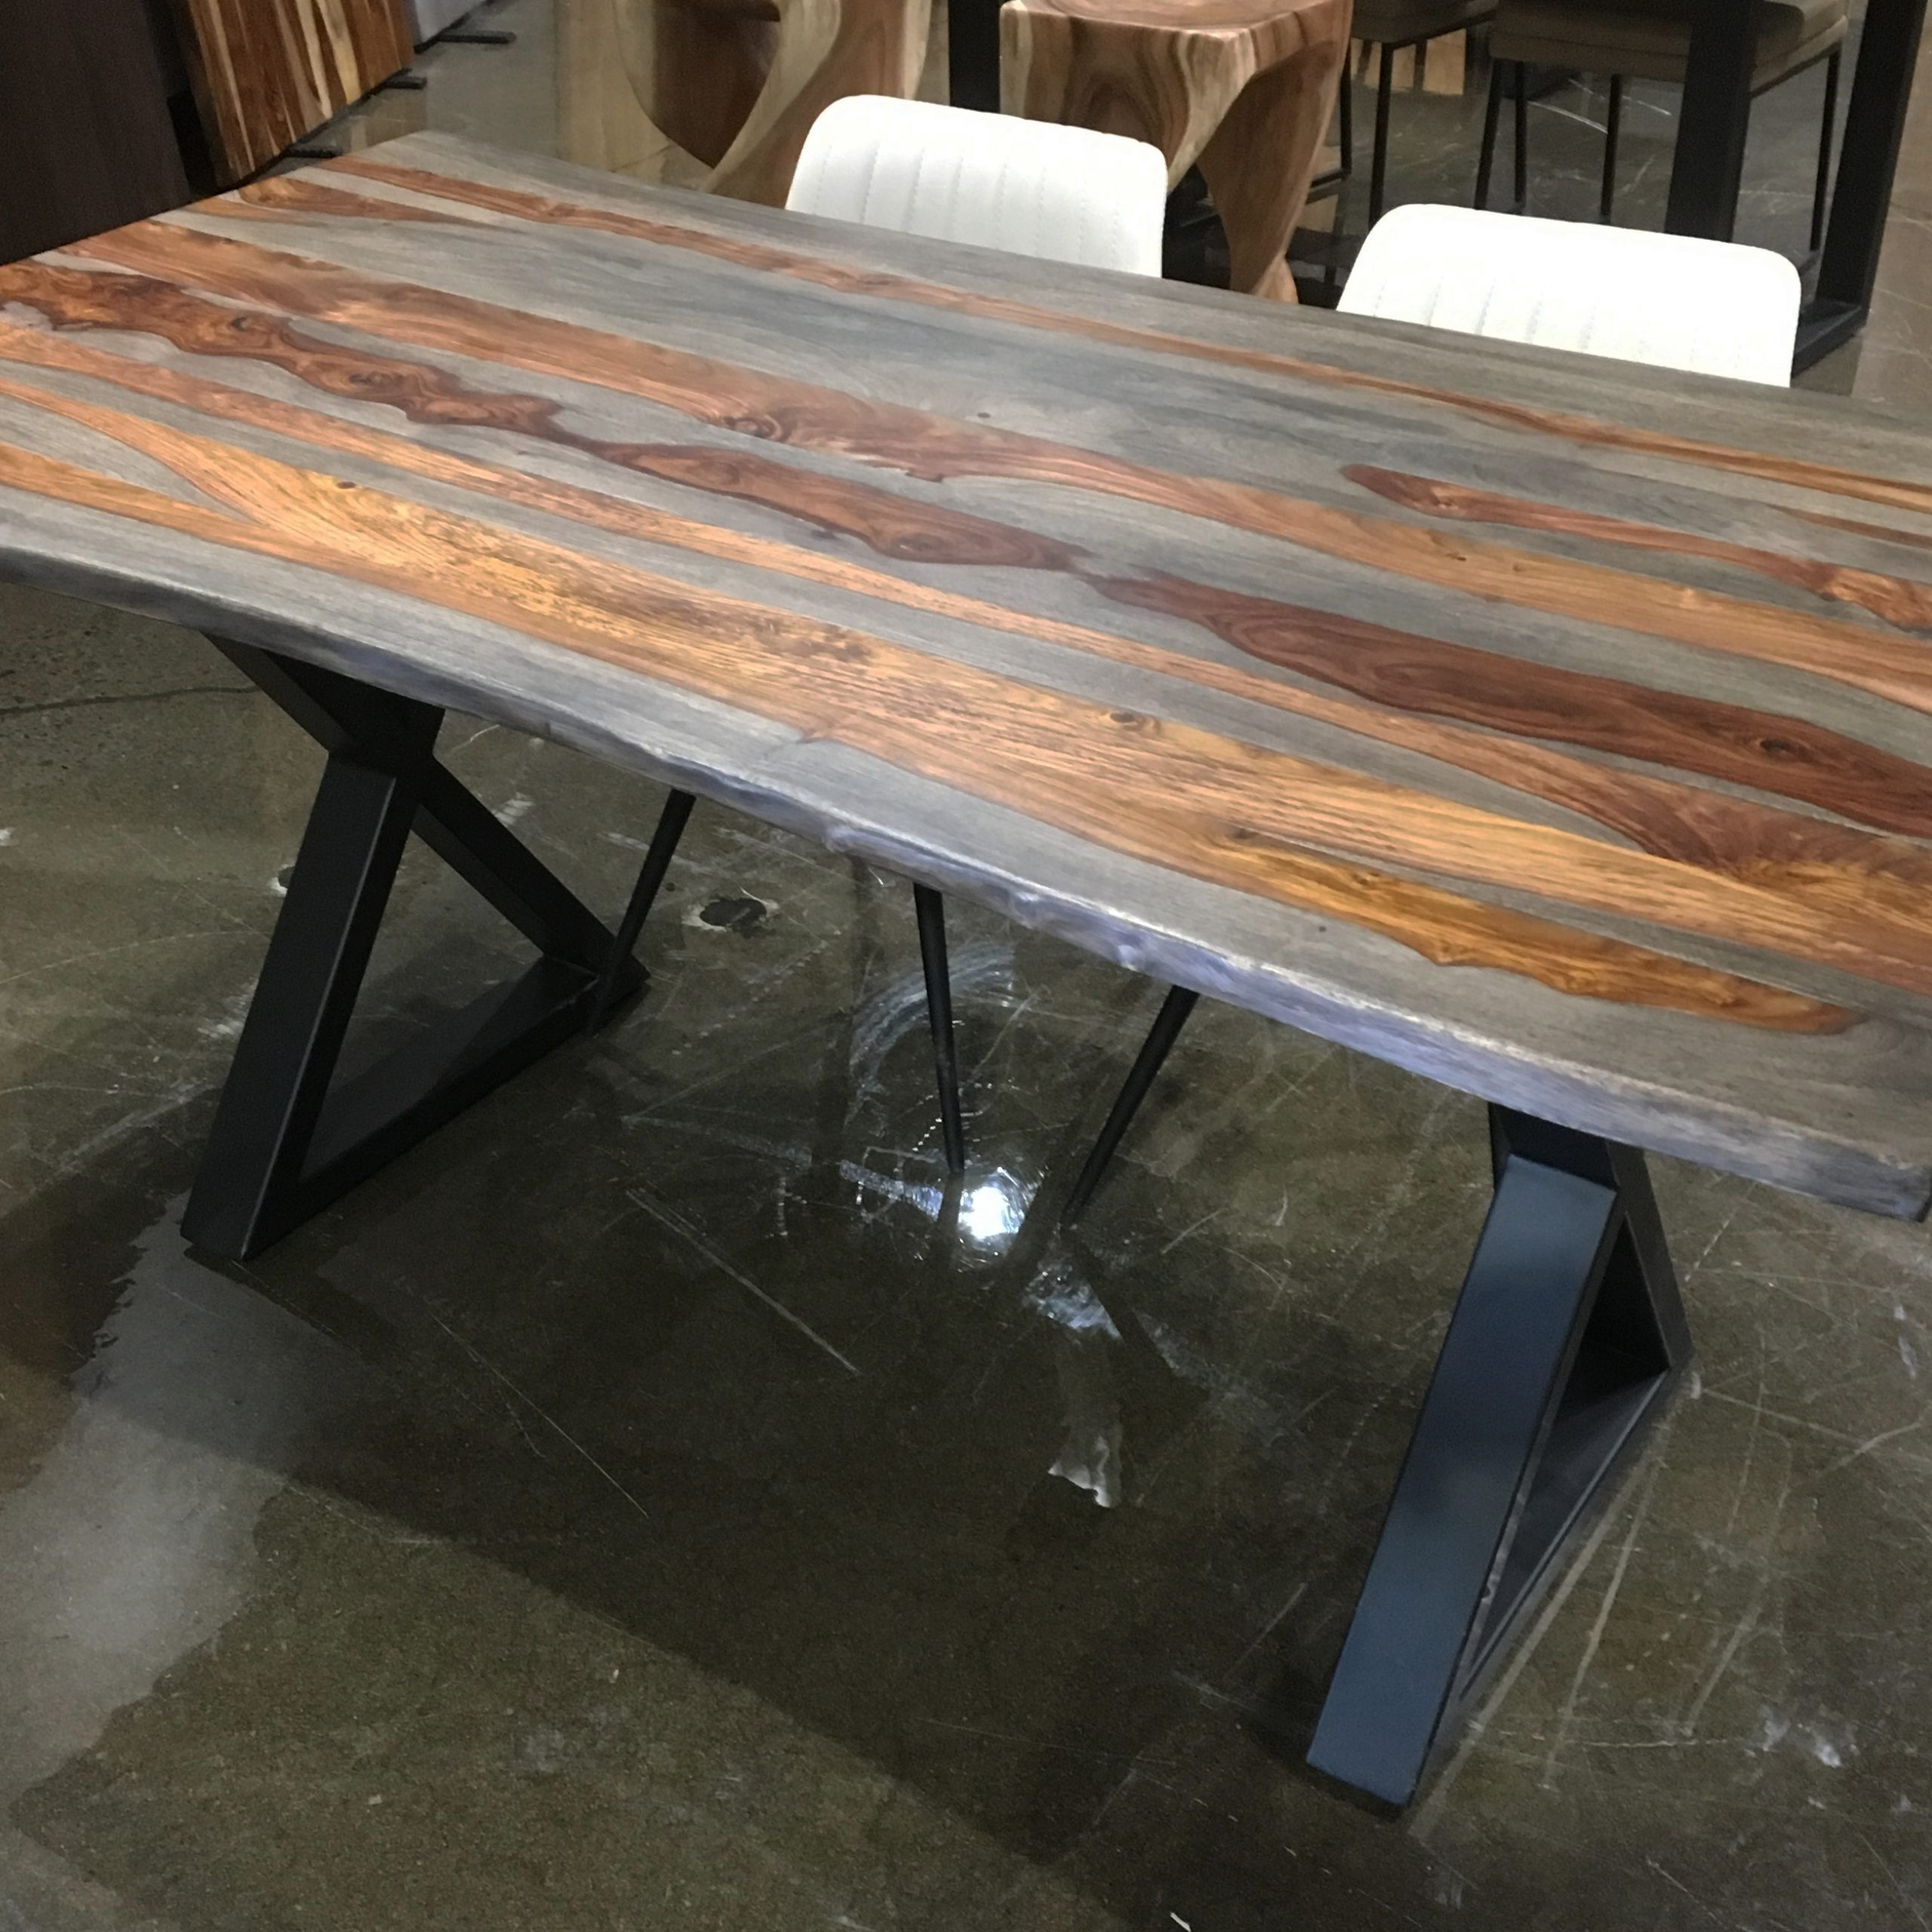 "Most Popular Acacia Dining Tables With Black Rocket Legs Pertaining To Corcoran Acacia Live Edge Dining Table With Black Rocket Legs – 96"" (Gallery 20 of 30)"